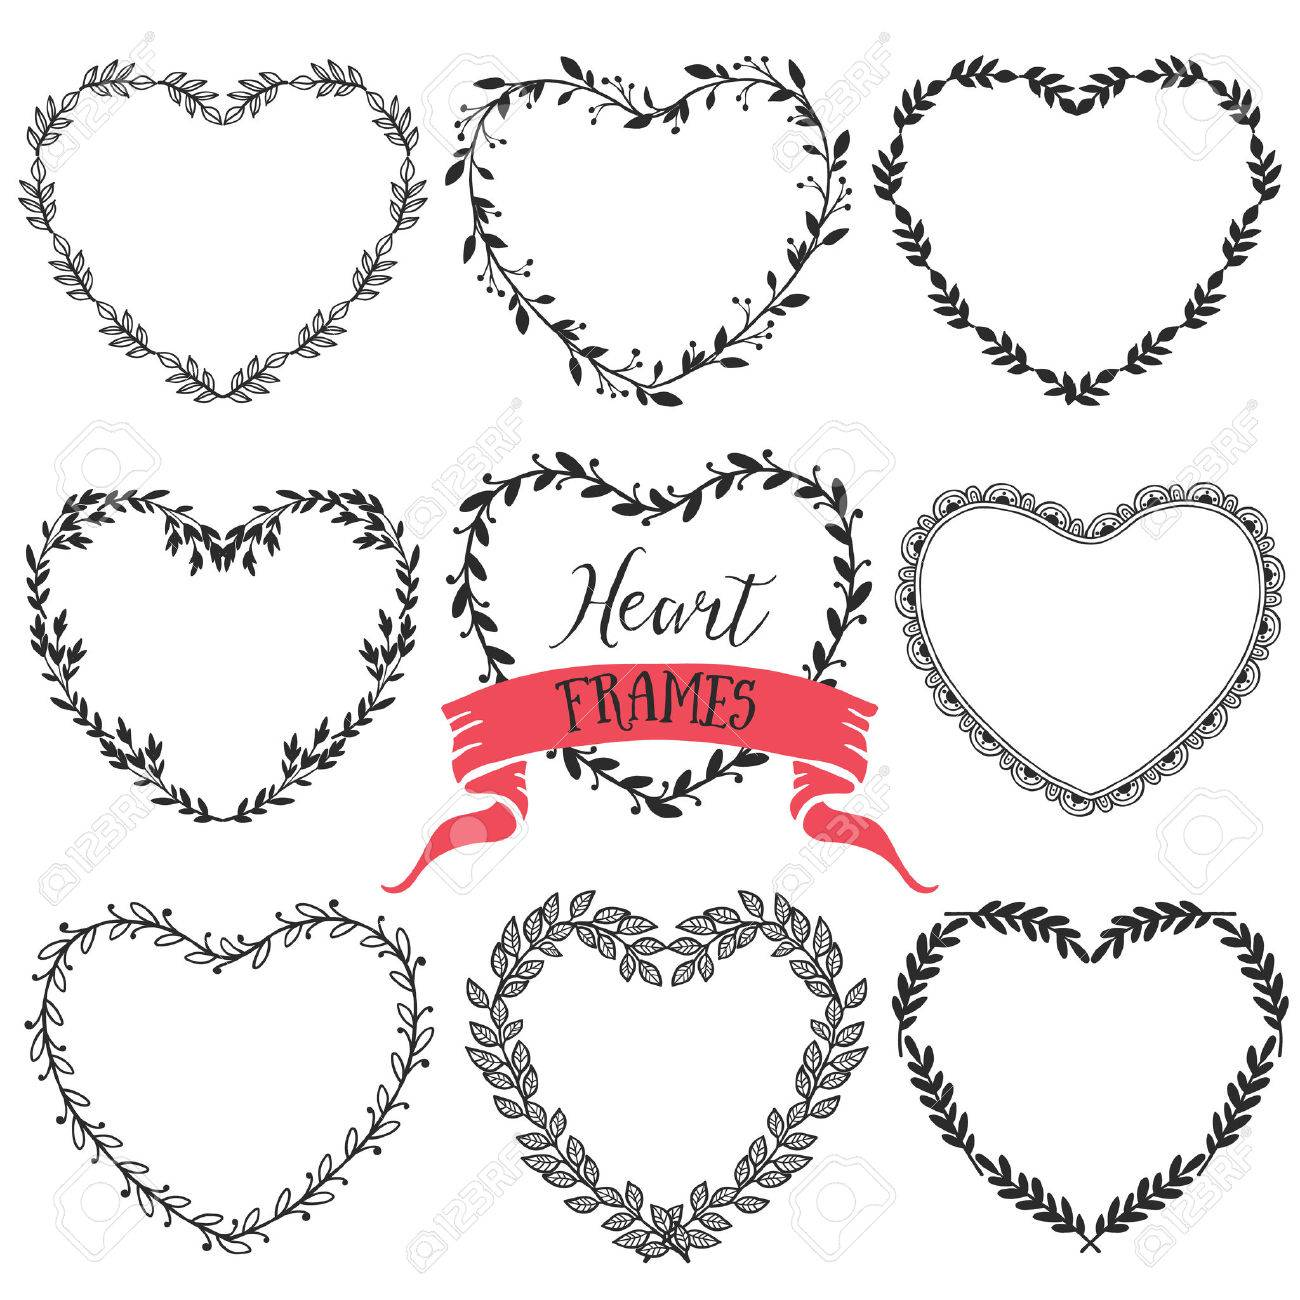 Hand Drawn Rustic Vintage Heart Wreaths Floral Vector Graphic Nature Design Elements Stock